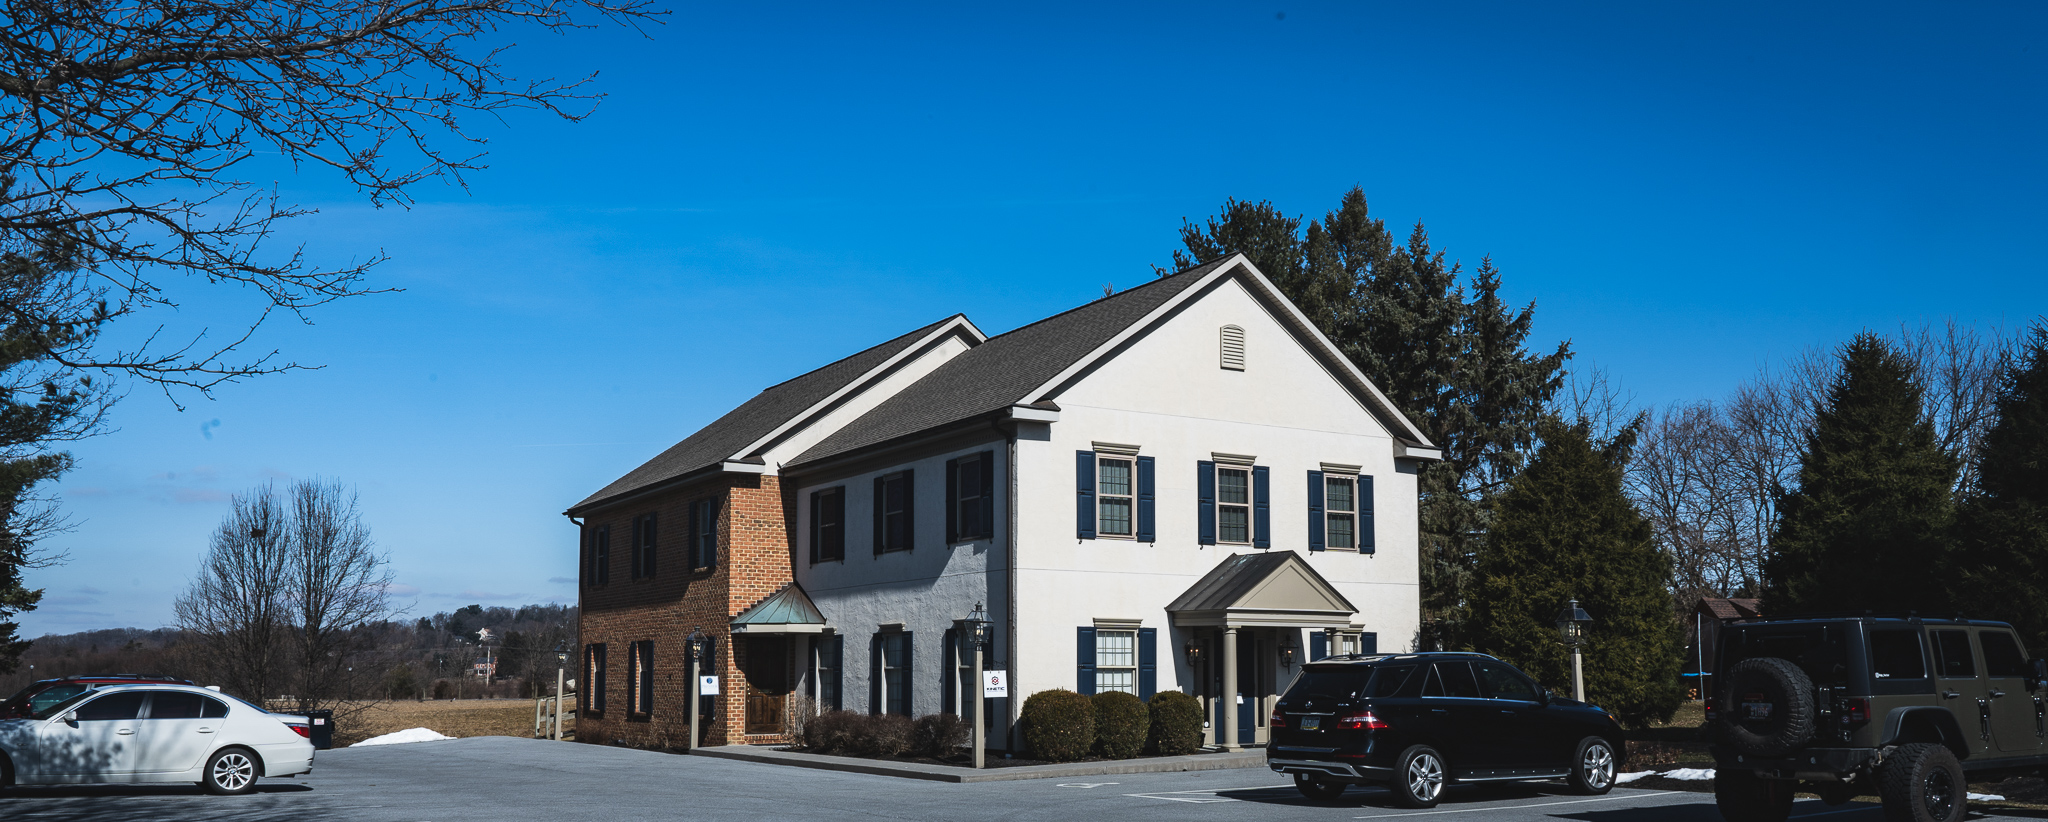 Our Lancaster Location is conveniently located off Fruitville Pike less than 1 mile from Rt 30 and Rt 283.